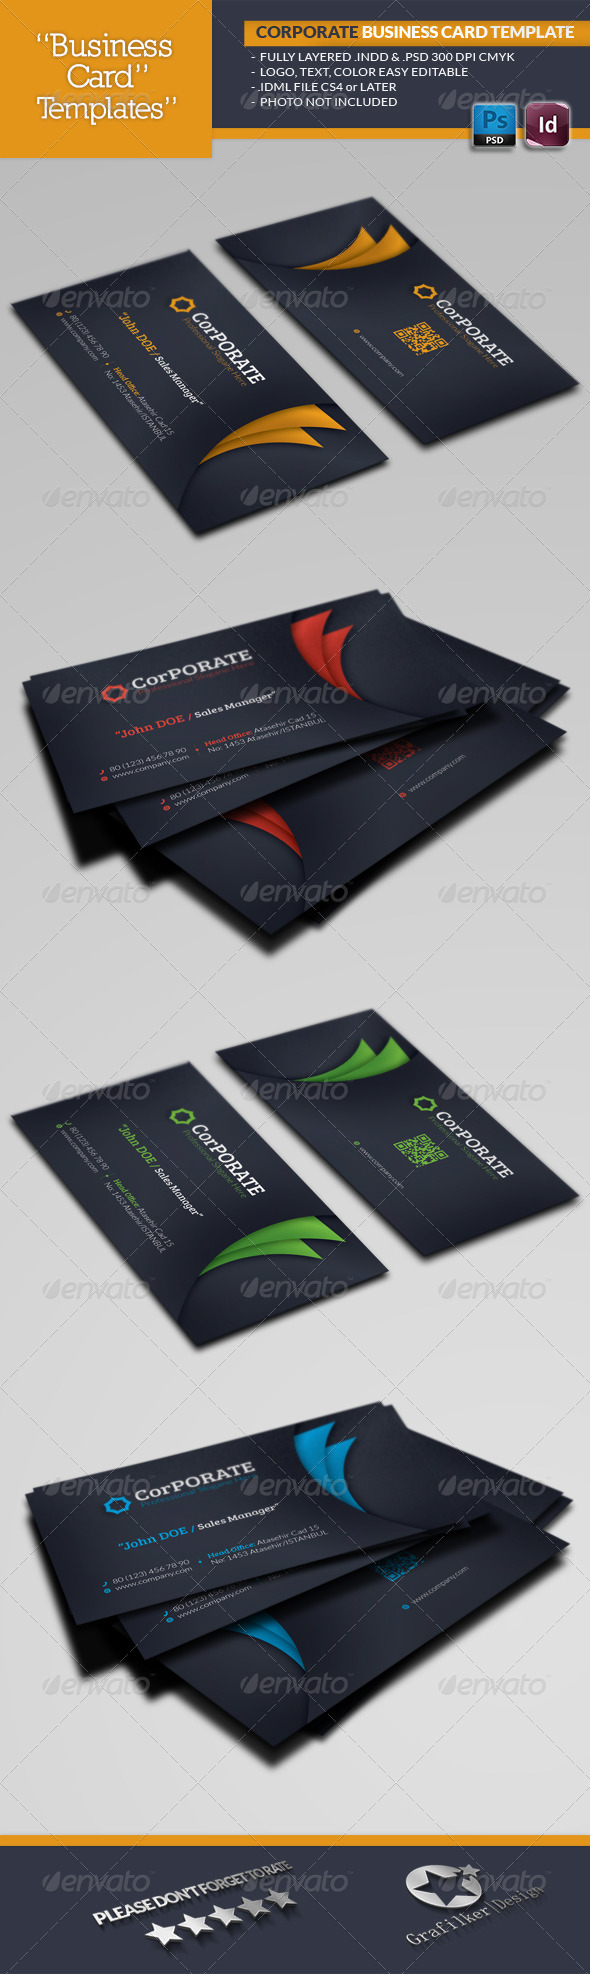 GraphicRiver Corporate Business Card Template 5071200